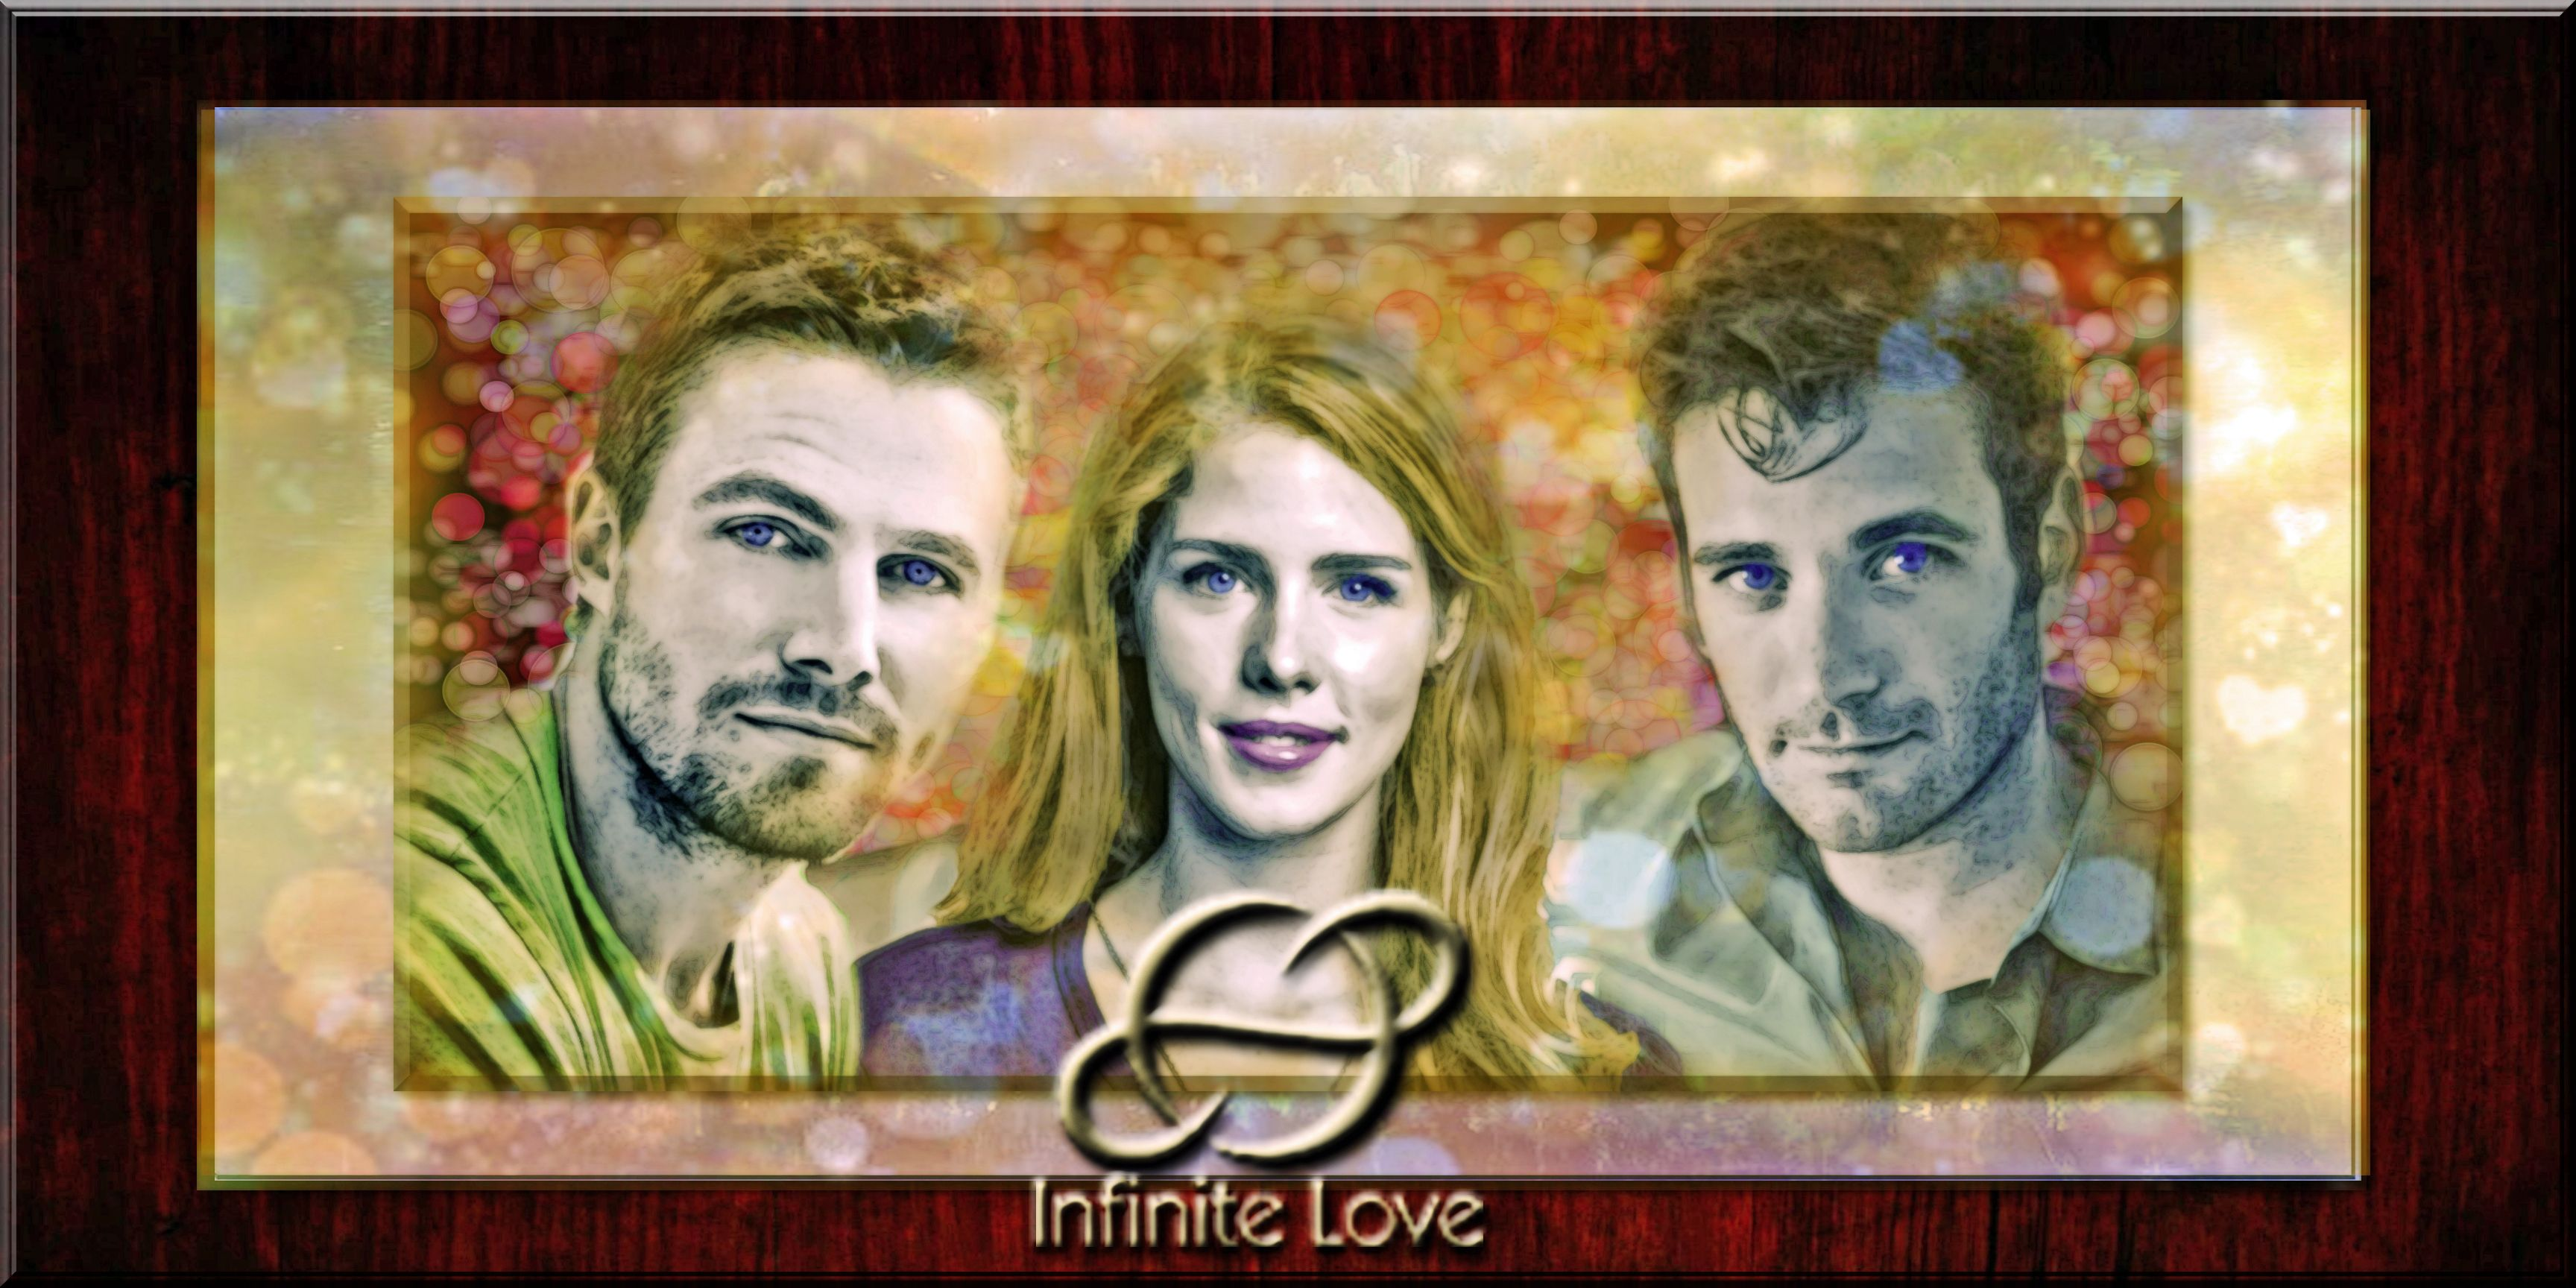 Infinite Love Chronology - Chapter 1 - realityisoverrated - Arrow